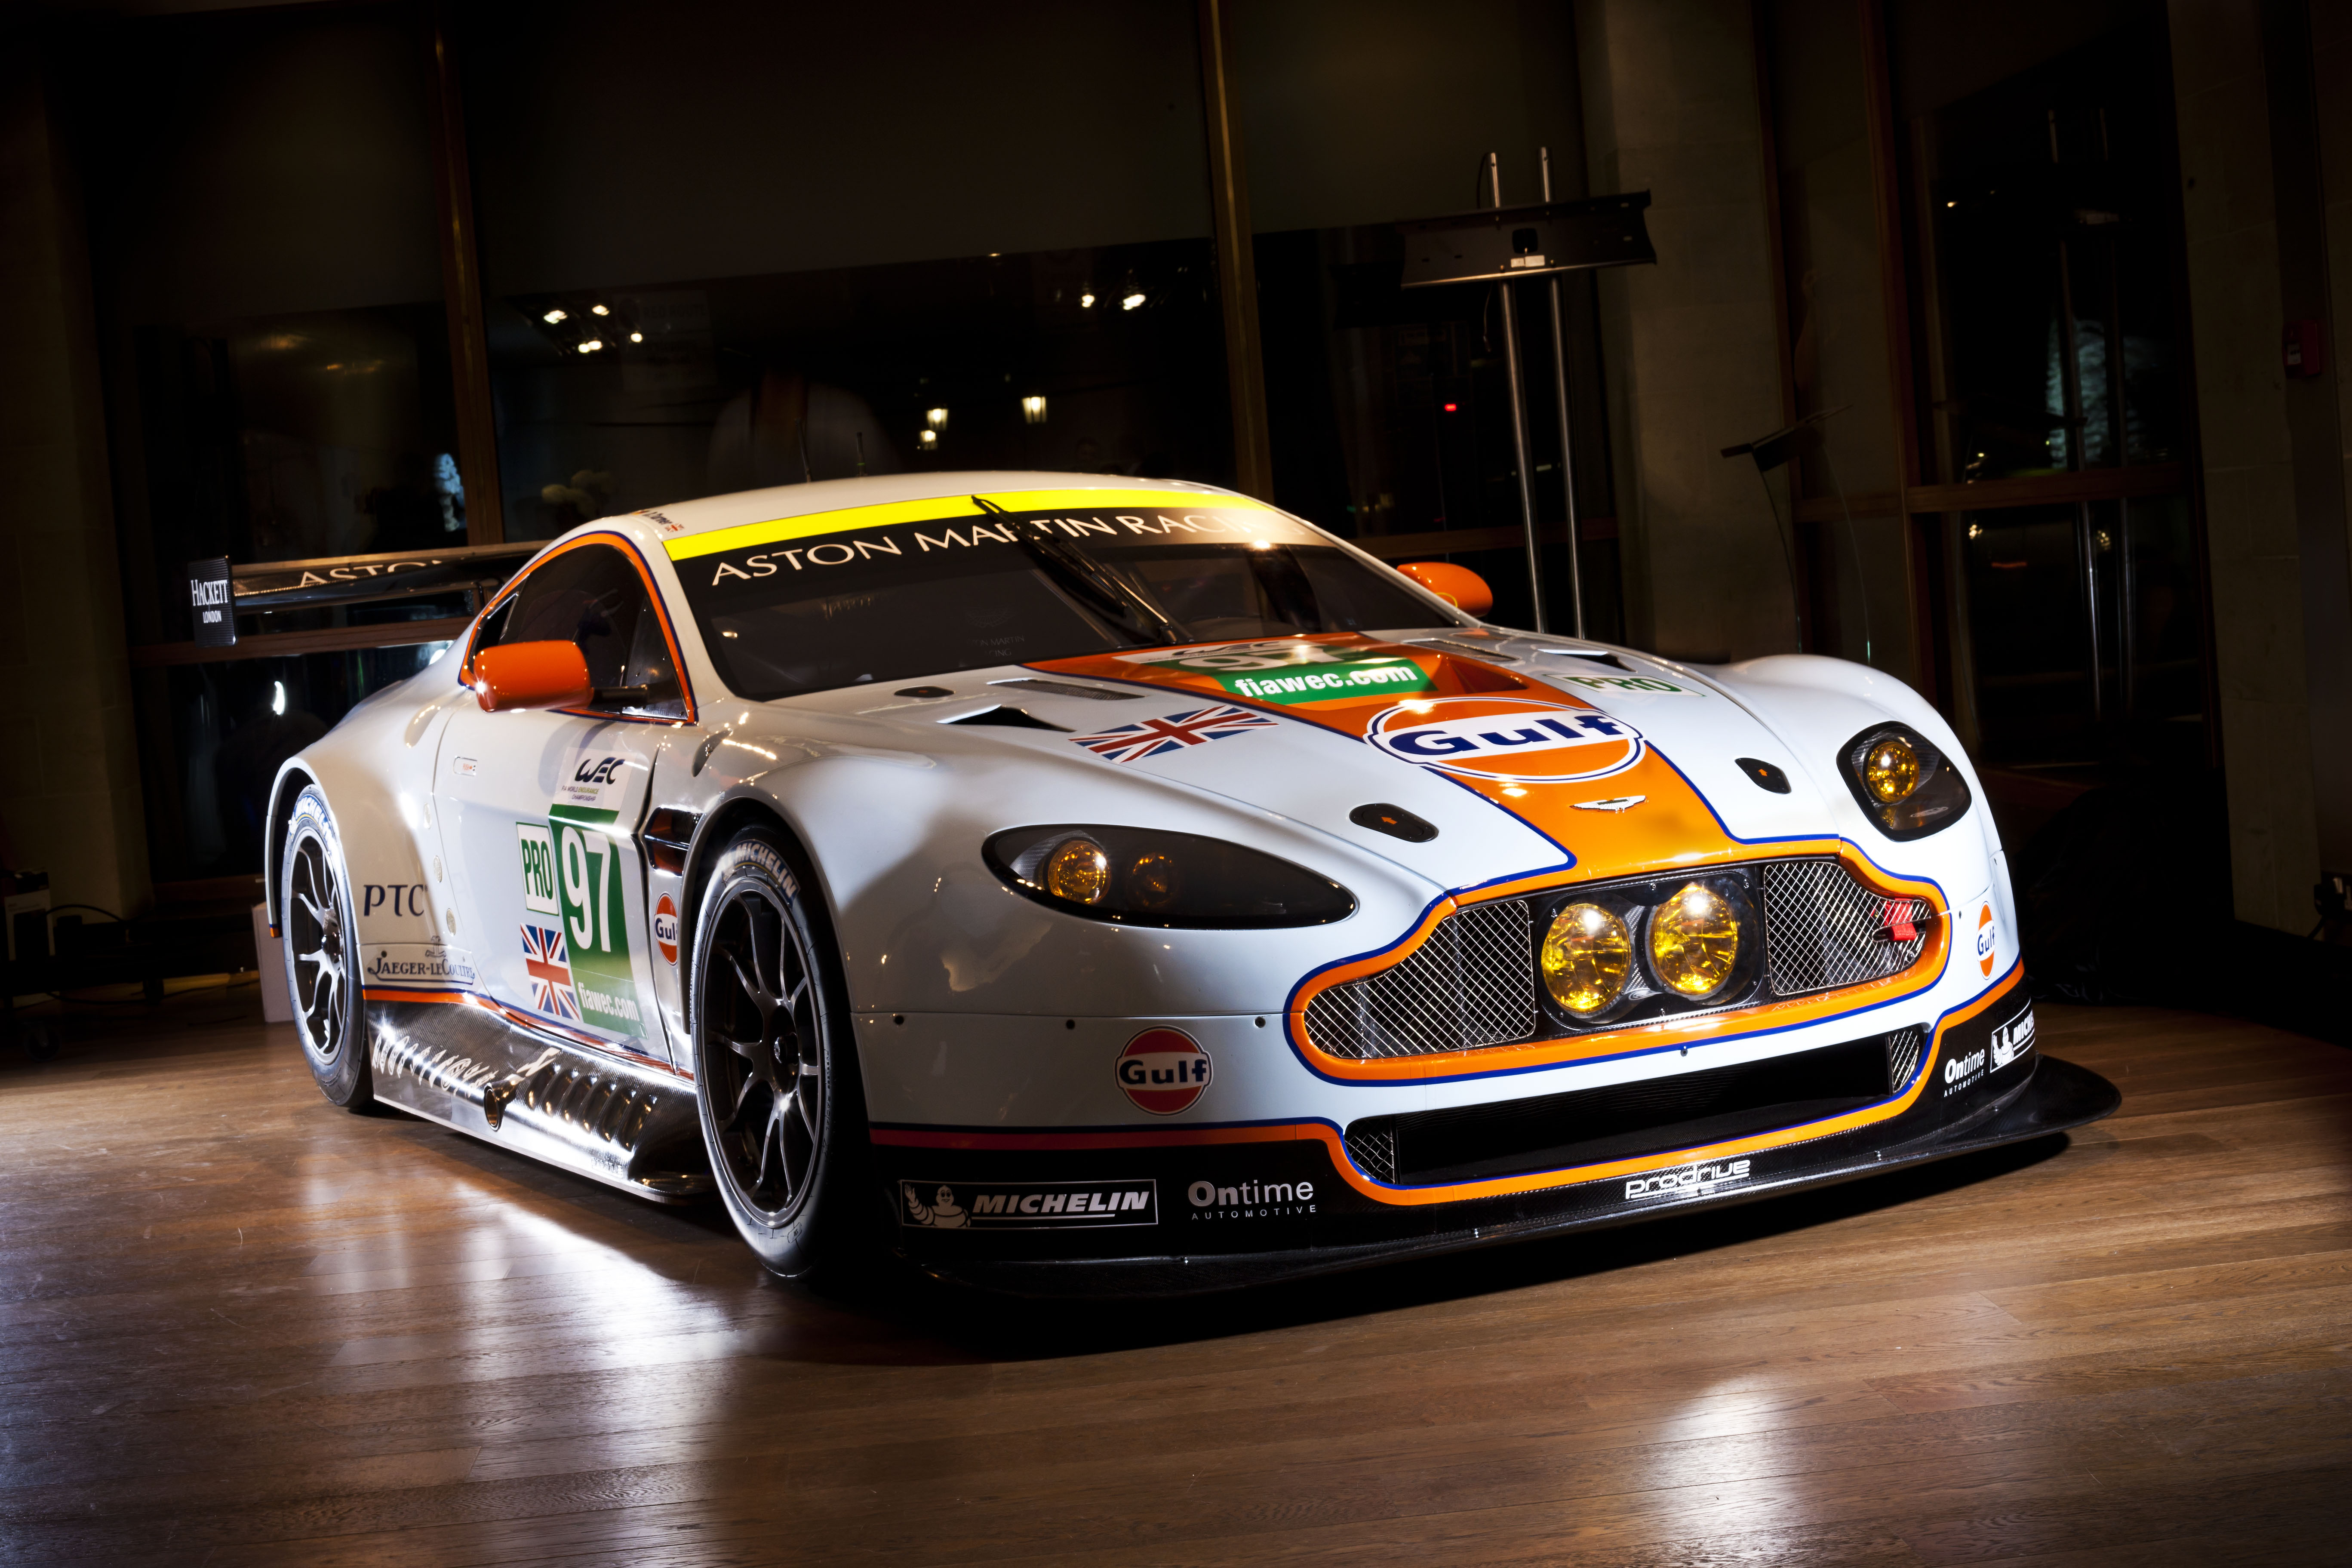 Aston Martin Celebrates Centenary Year With Its Most Ambitious Racing Programme To Date